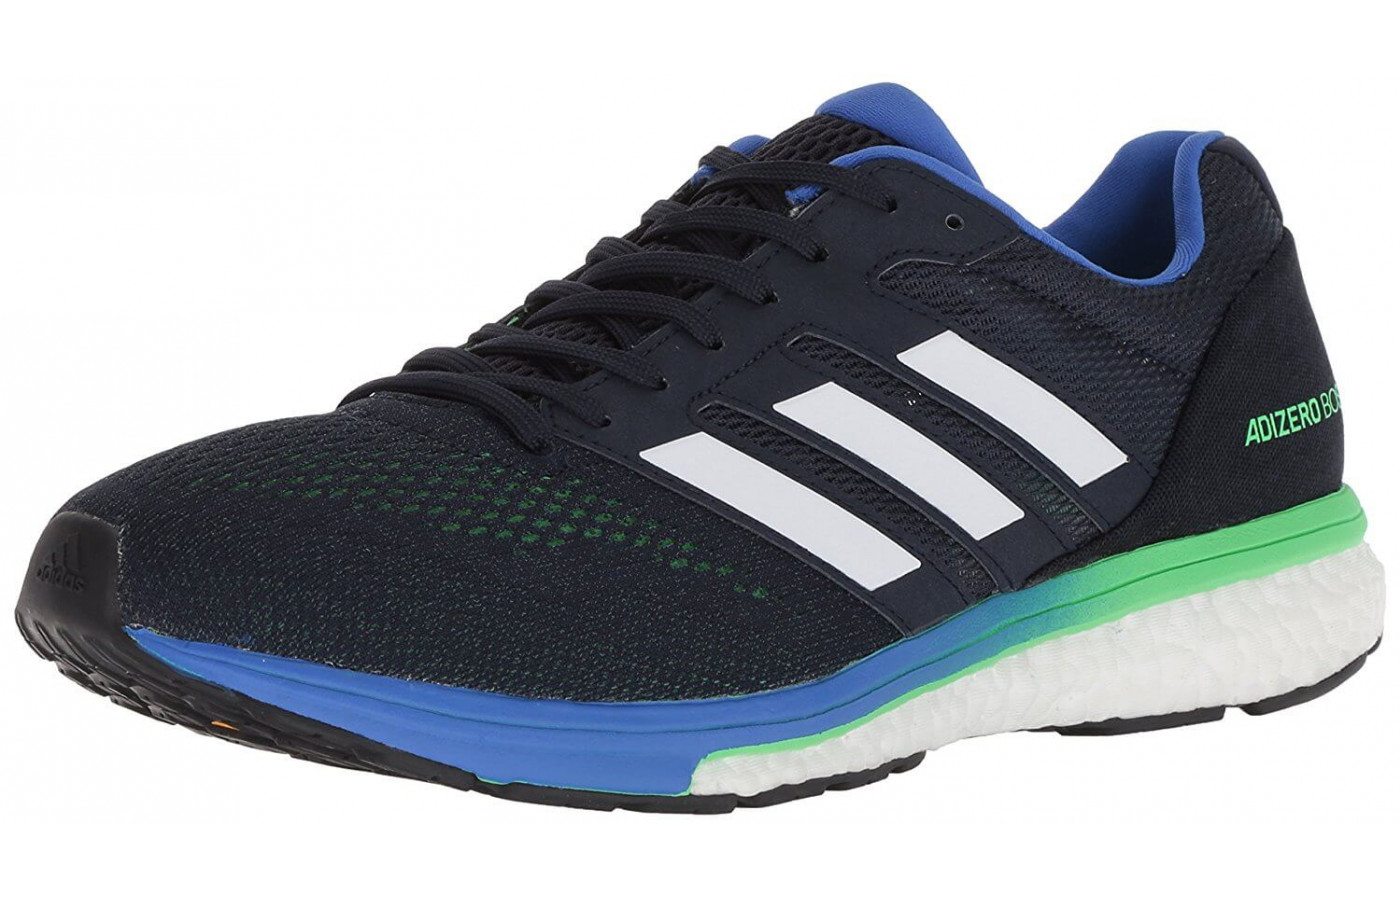 Adidas Adizero Boston 7 - To Buy or Not in Apr 2019  832322bba